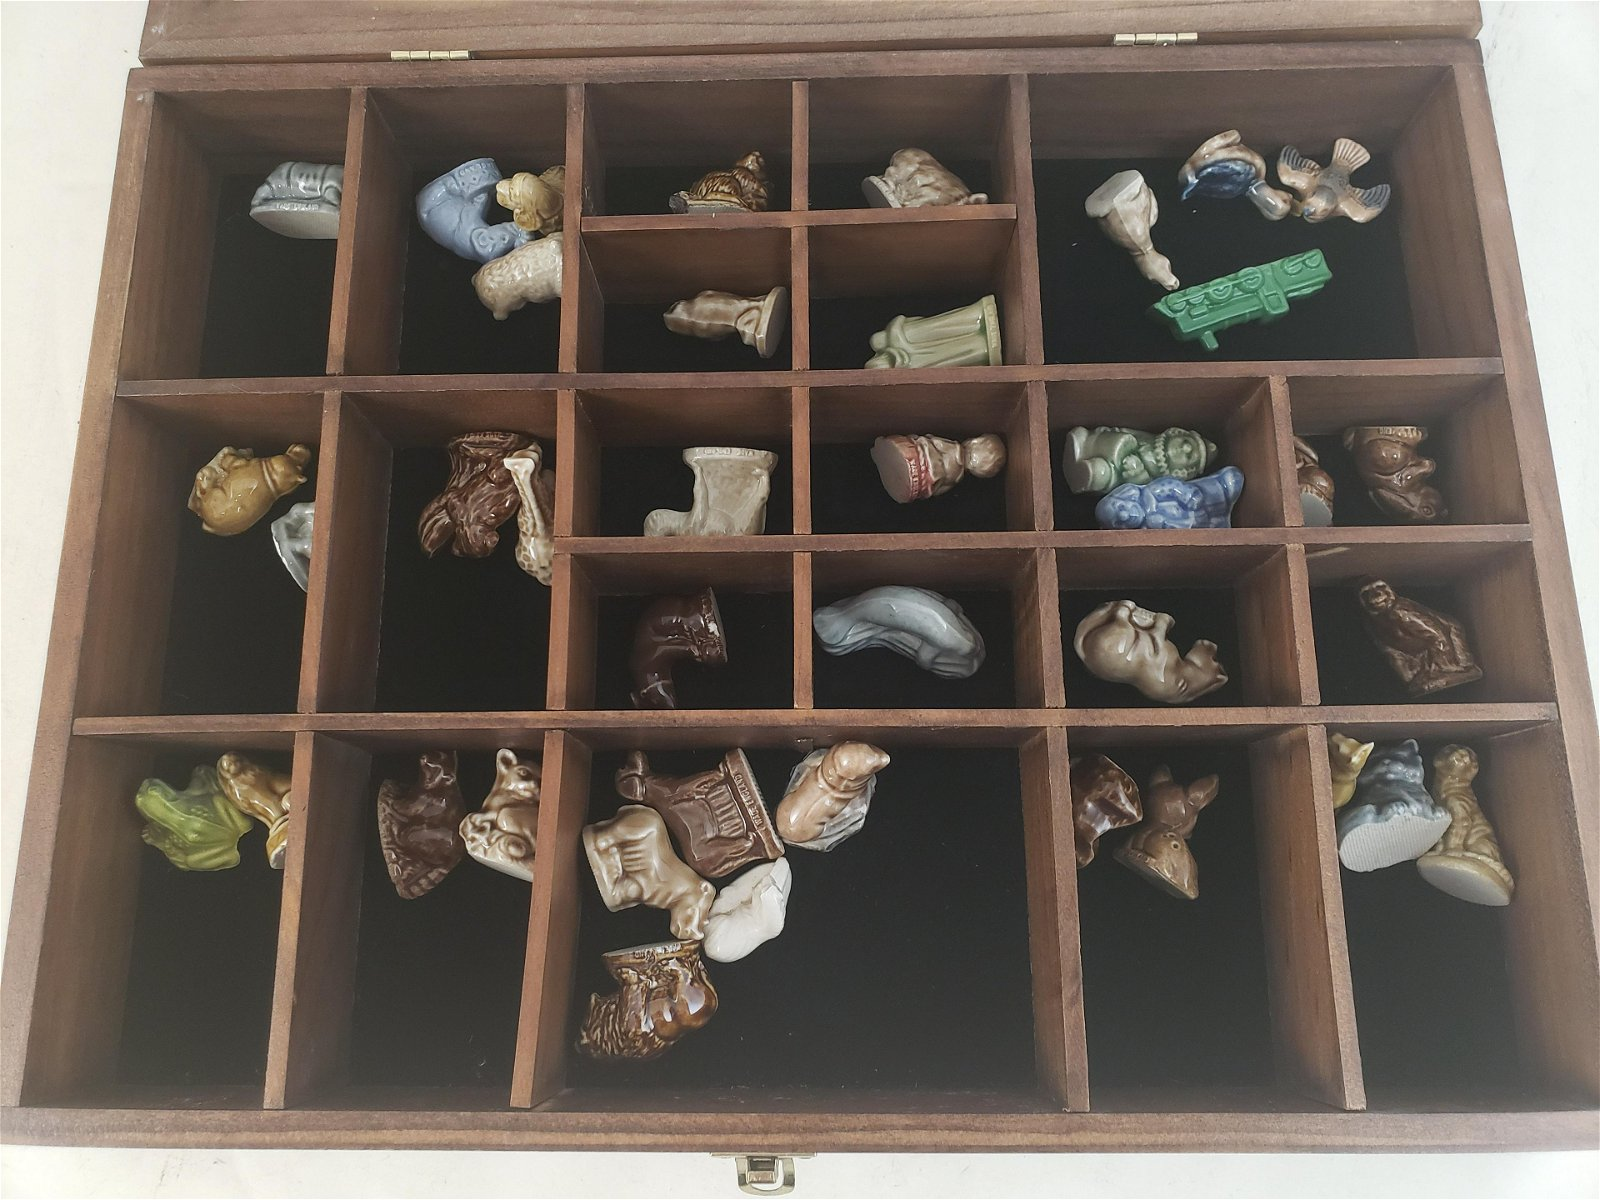 WOOD AND GLASS DISPLAY CASE WITH WADE FIGURINES